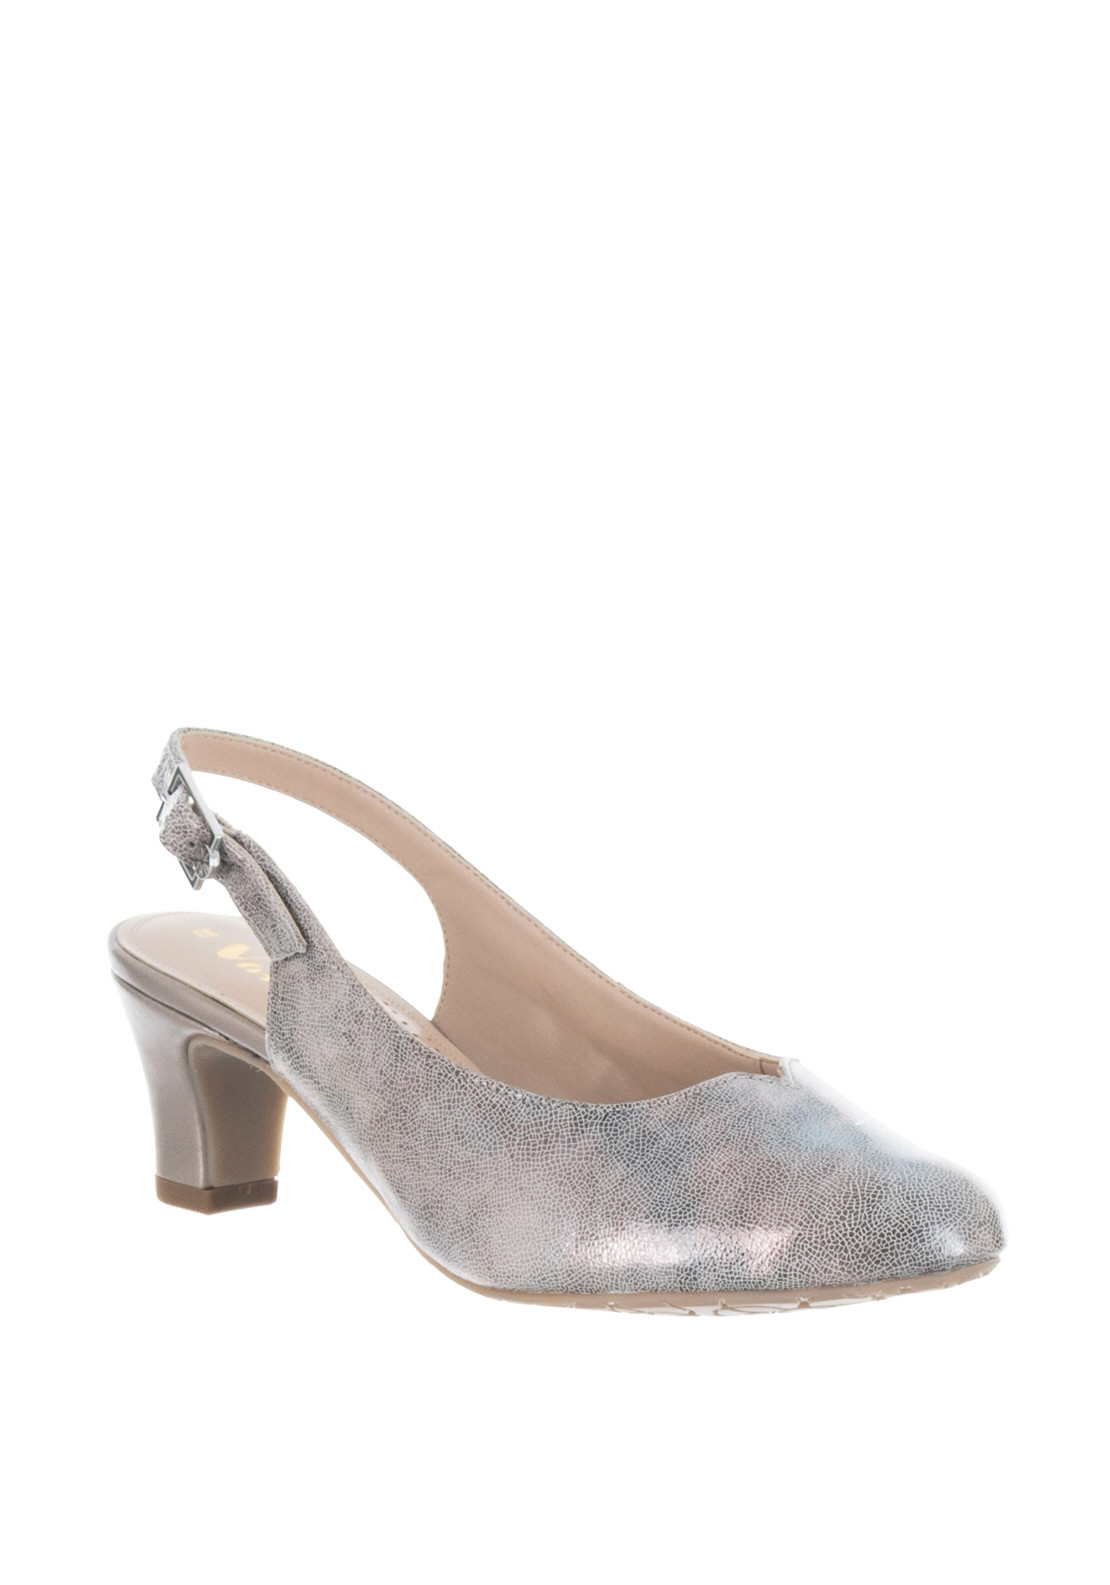 0e094ed98e Van Dal Winton Leather EE Fit Heeled Shoes, Grey. Be the first to review  this product